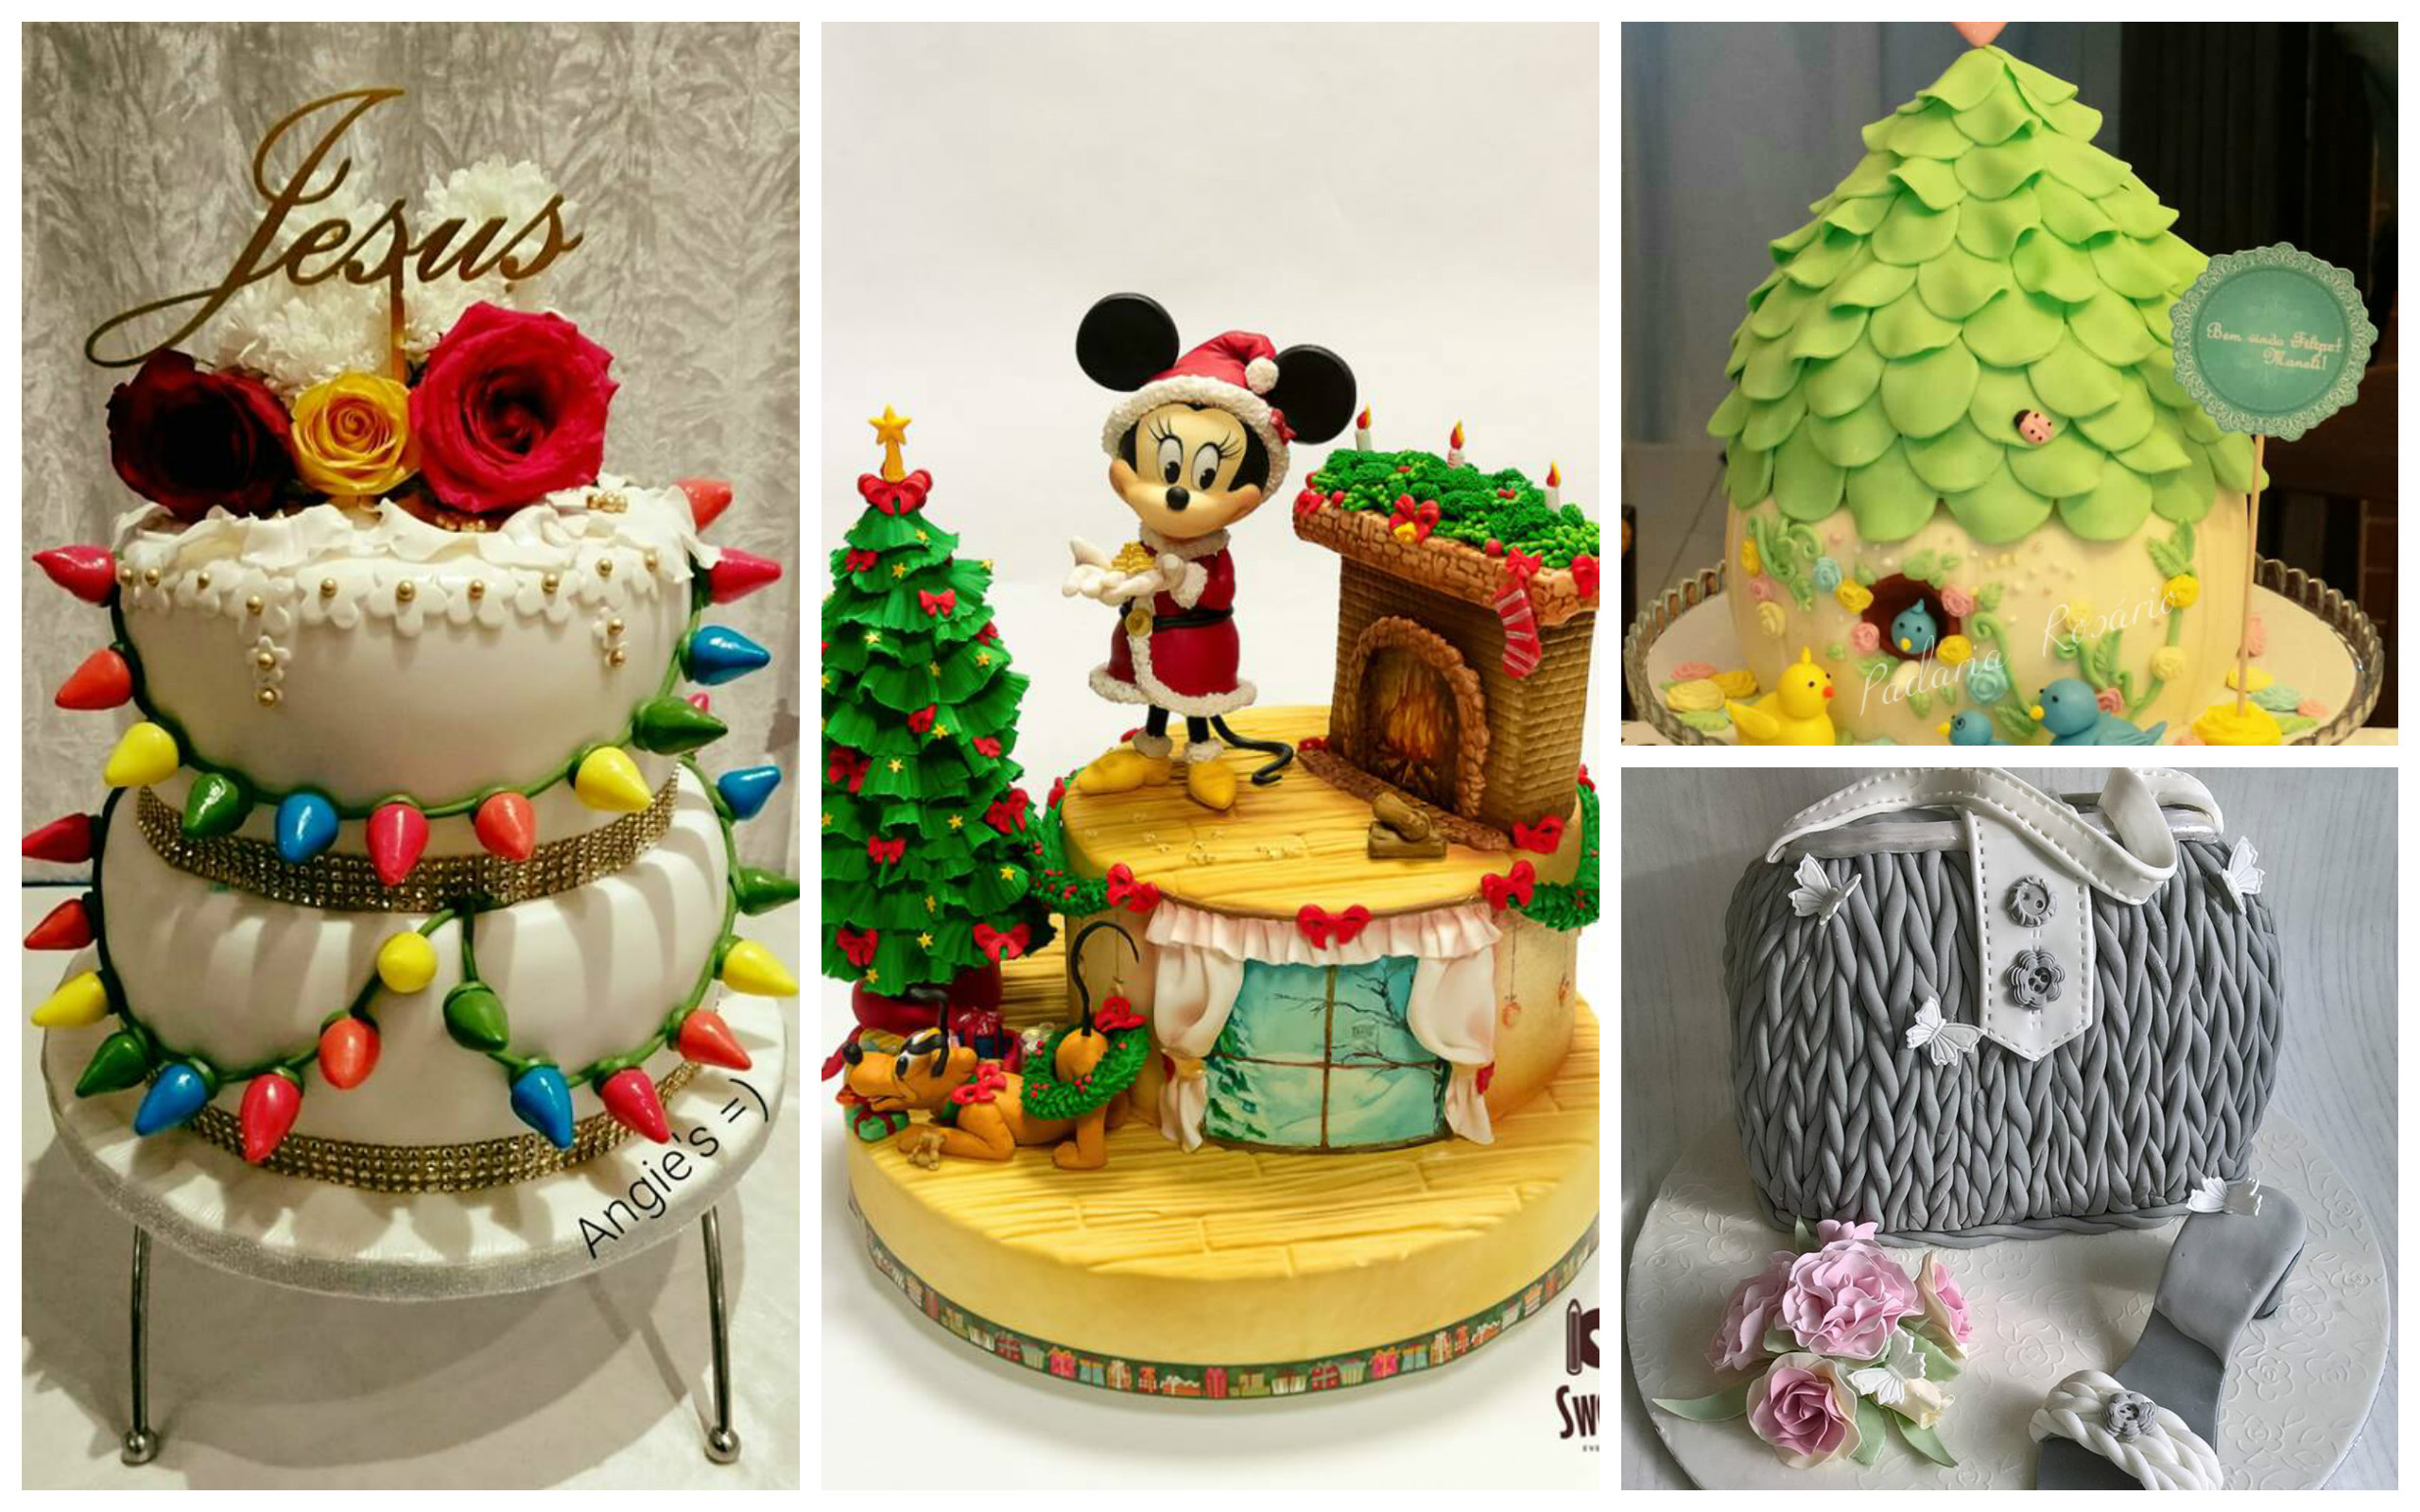 Cake Design Competition Show : Competition: The Number 1 Cake Artist In The World - Page ...